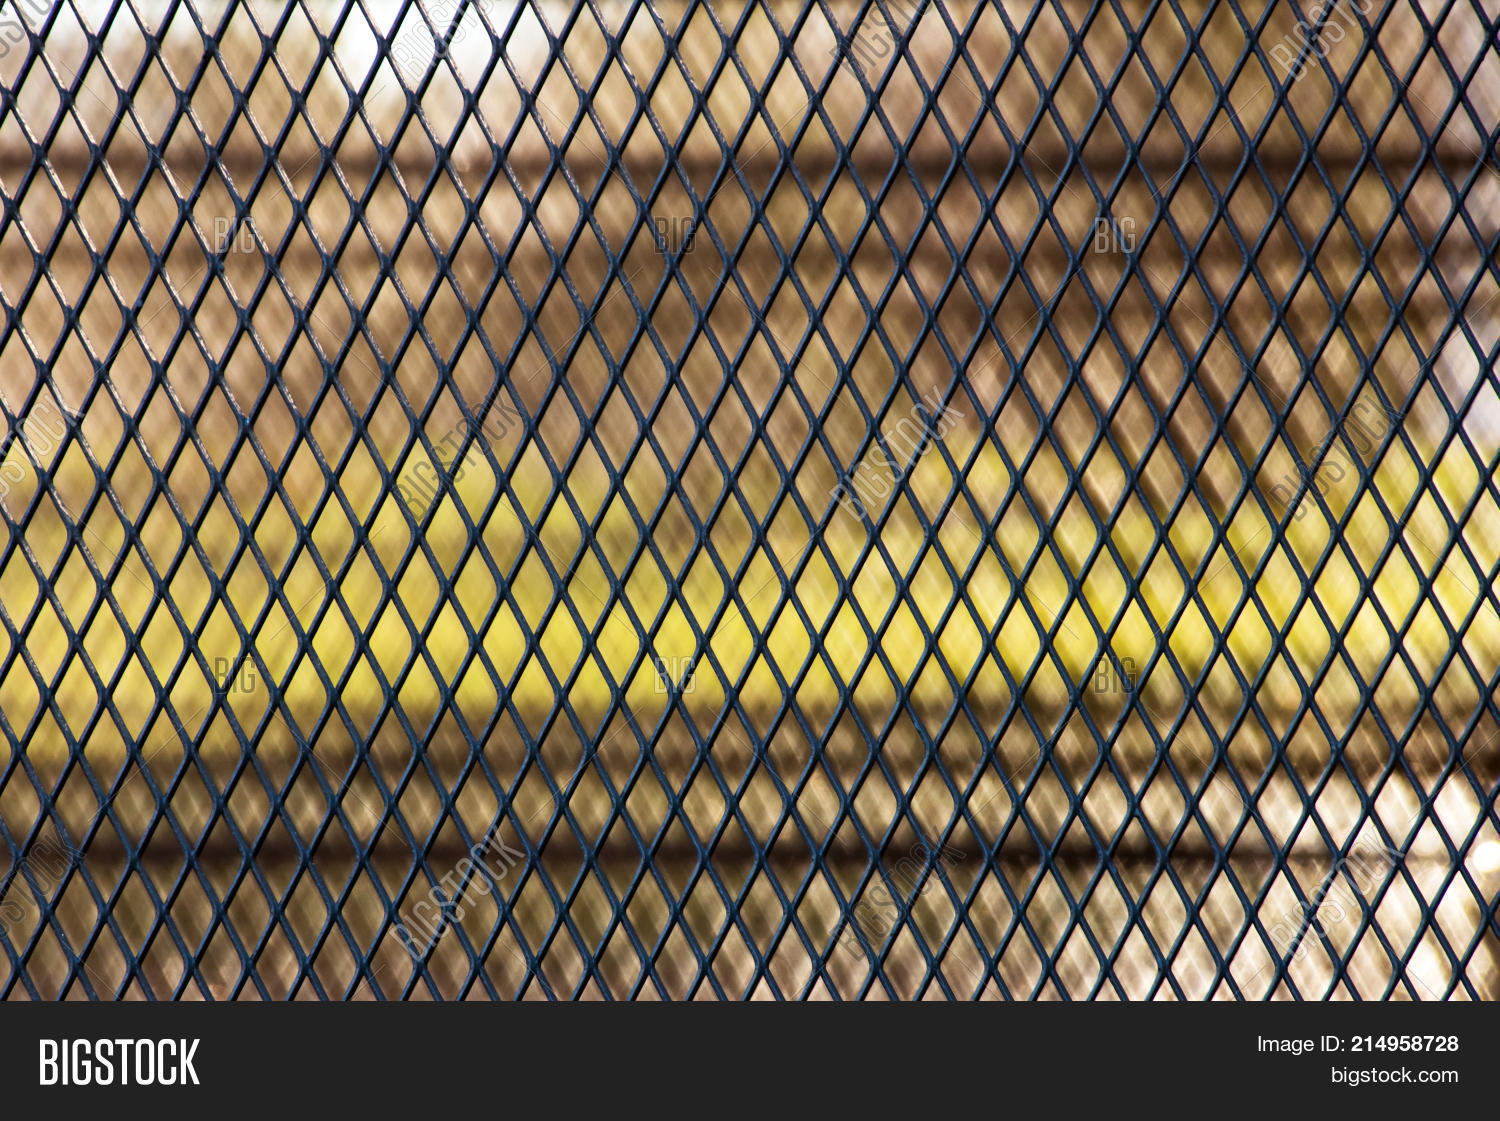 Steel Wire Mesh Fence Image & Photo (Free Trial)   Bigstock